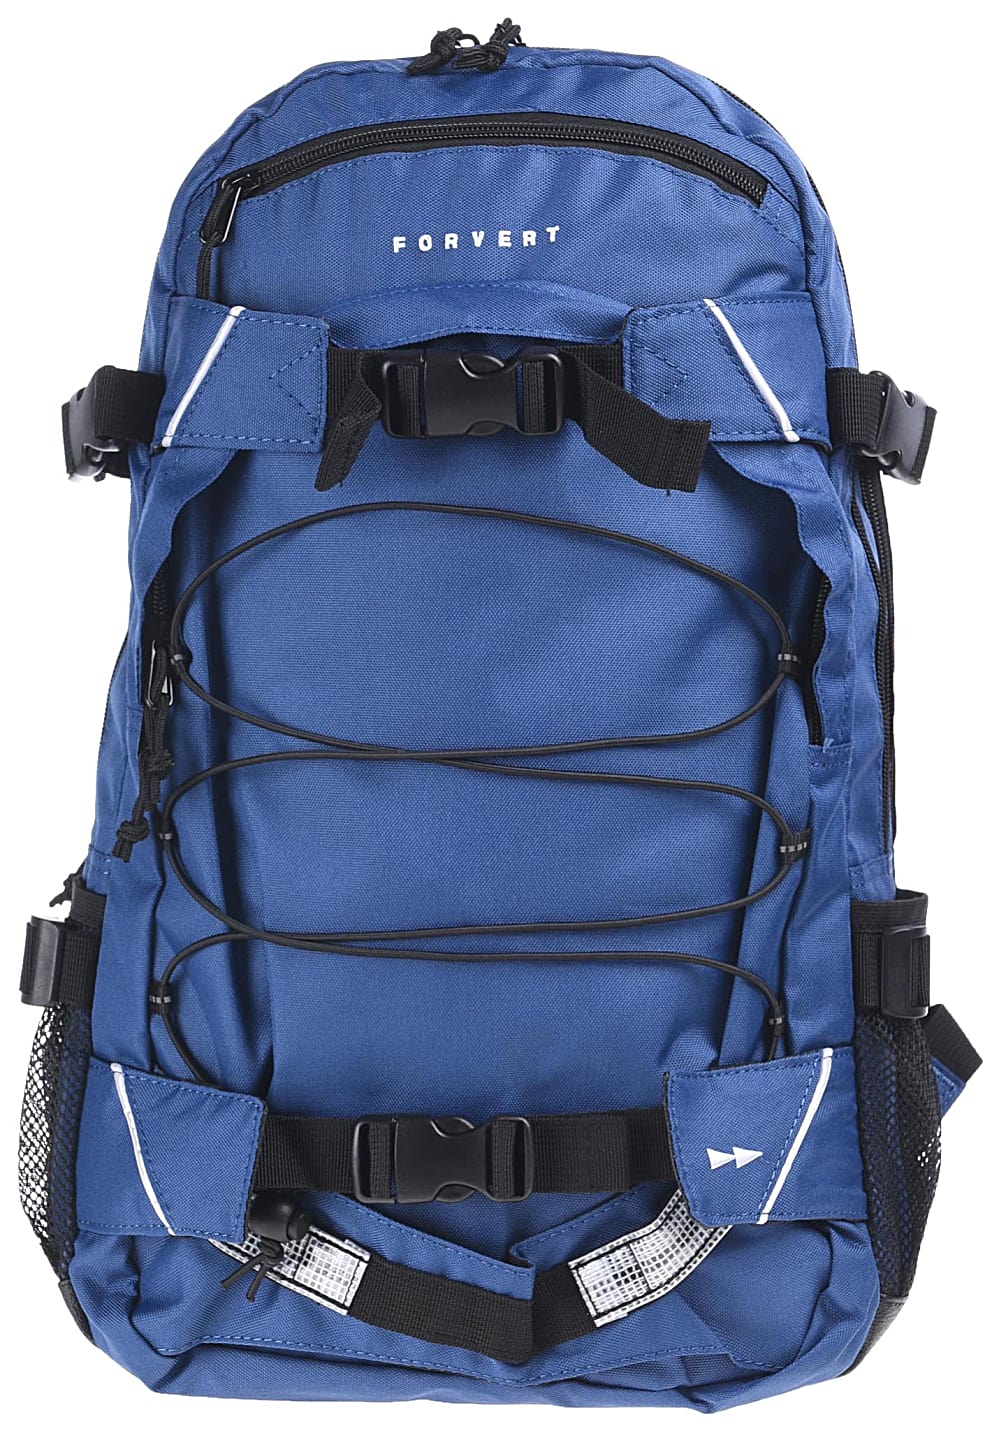 Forvert Laptop Louis 25L Laptoprucksack - Blau